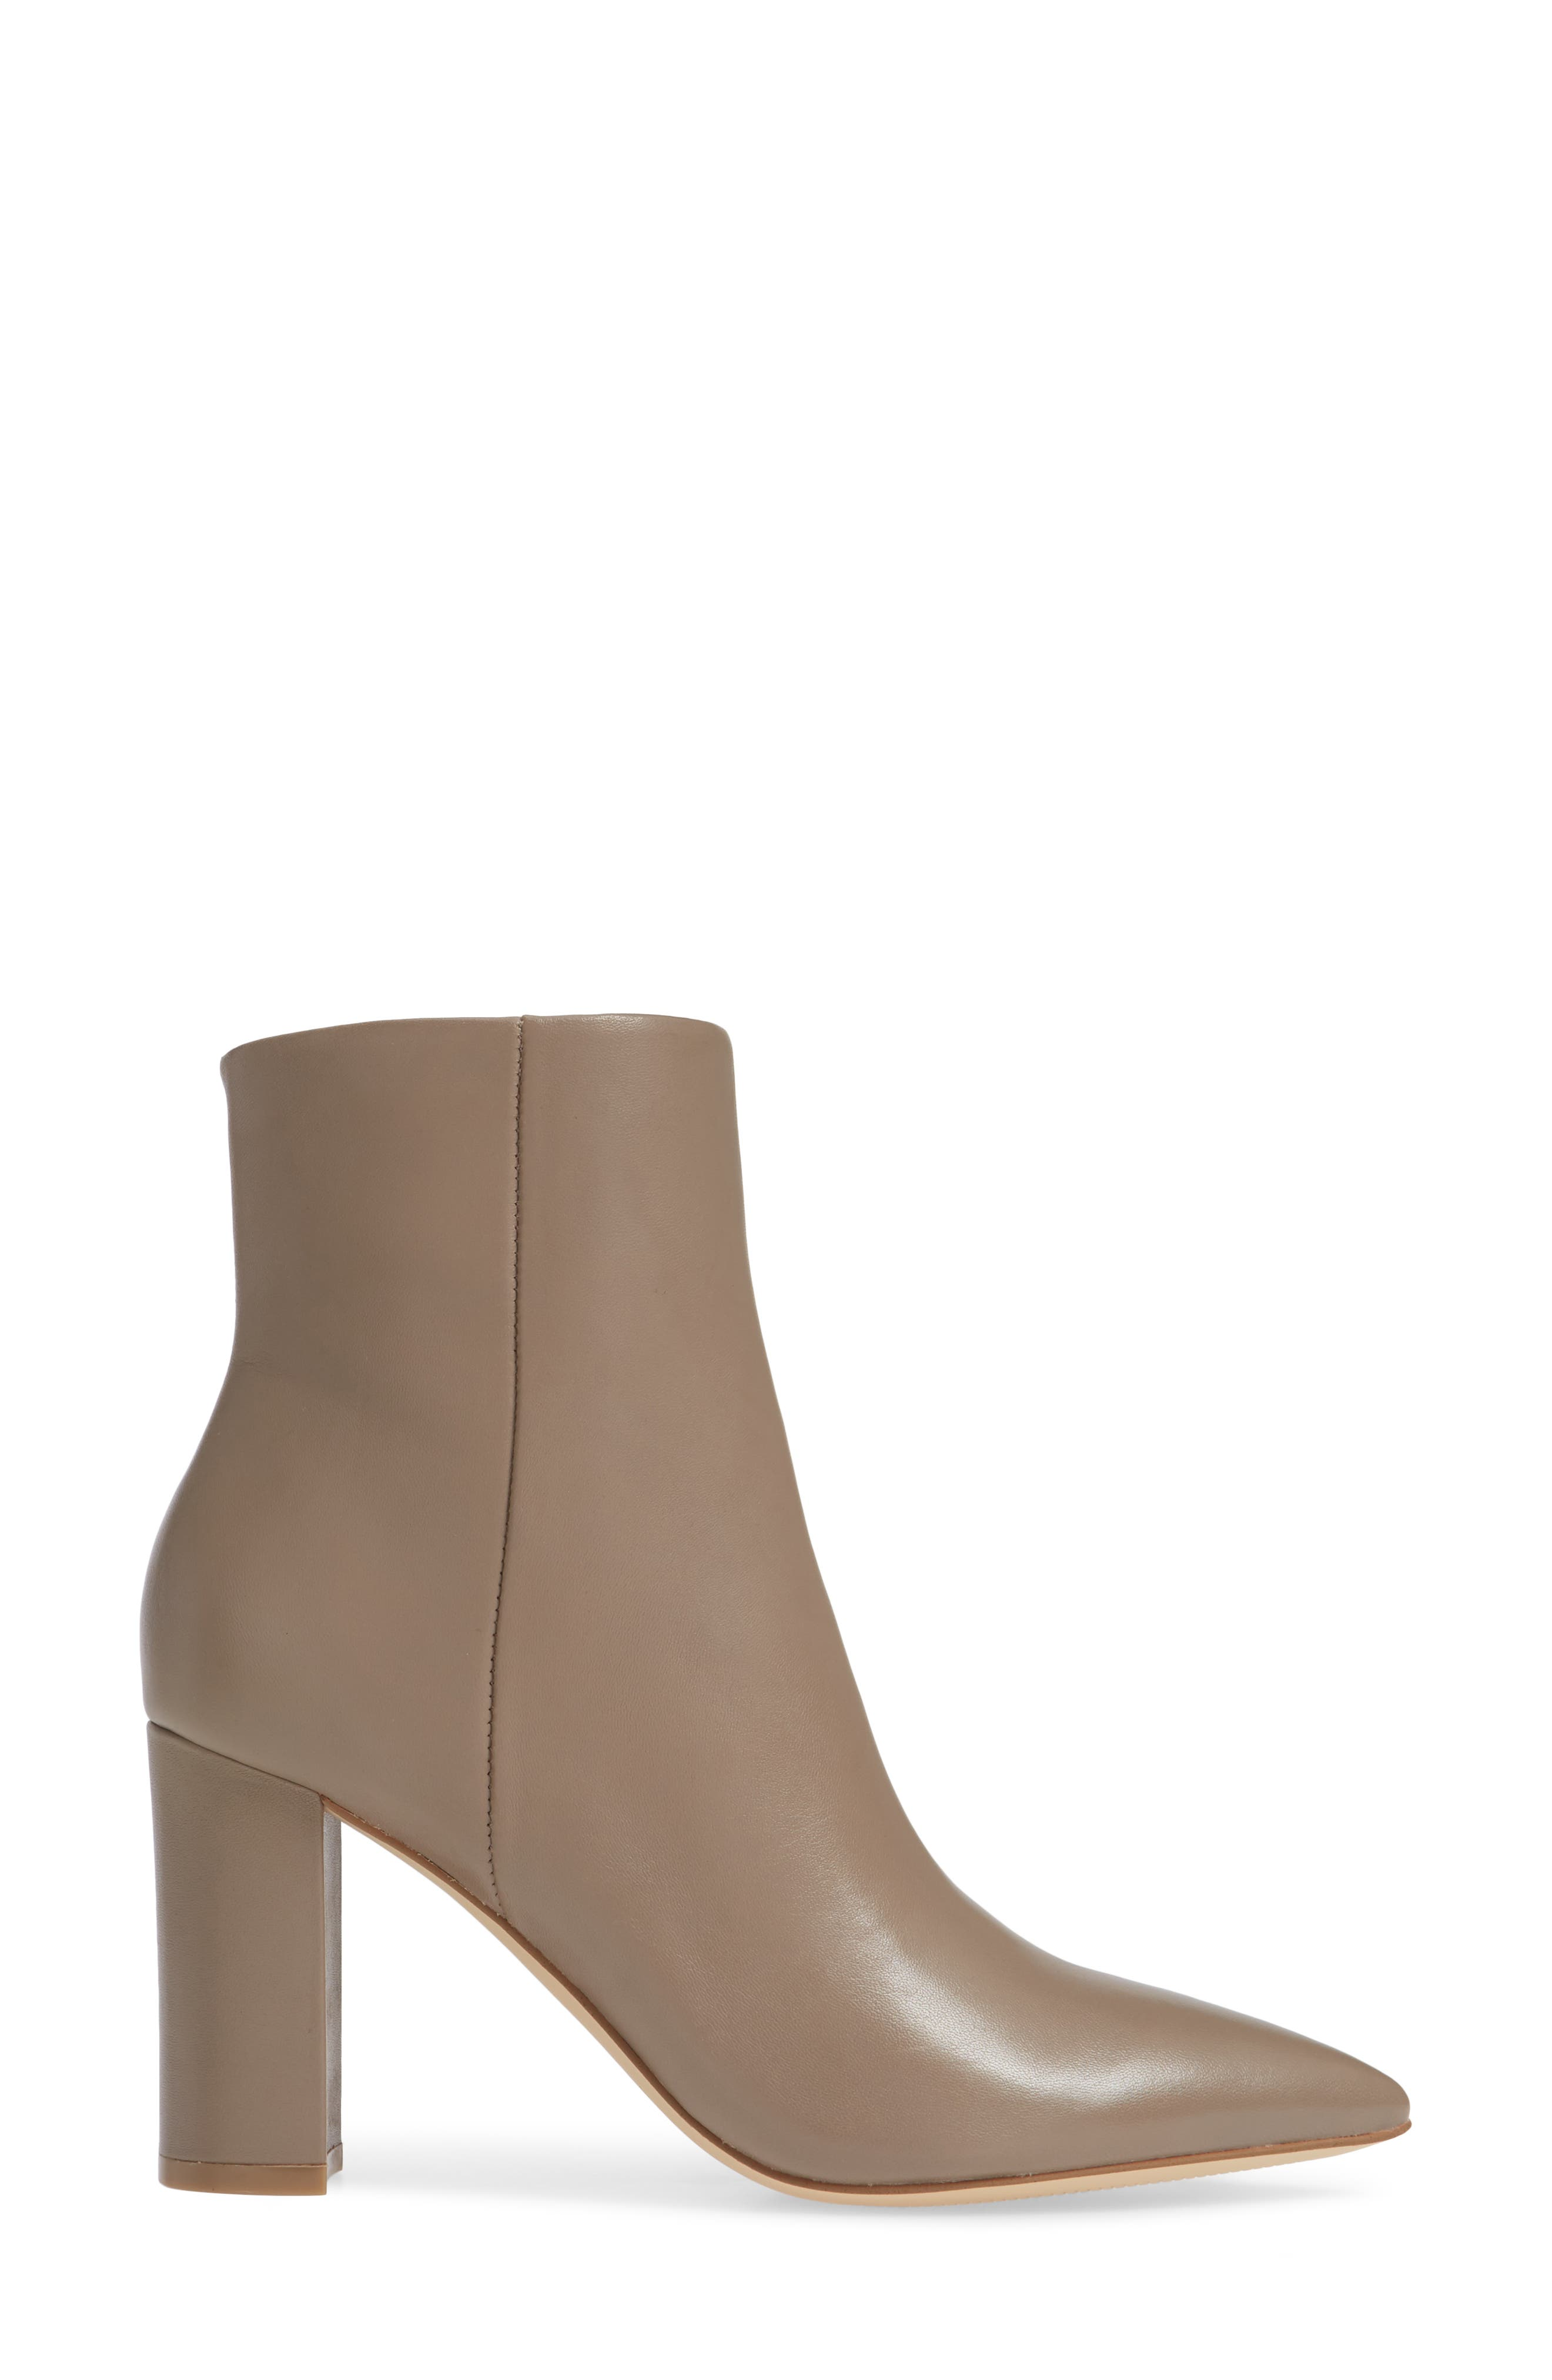 MARC FISHER LTD,                              Ulani Pointy Toe Bootie,                             Alternate thumbnail 3, color,                             TAUPE LEATHER